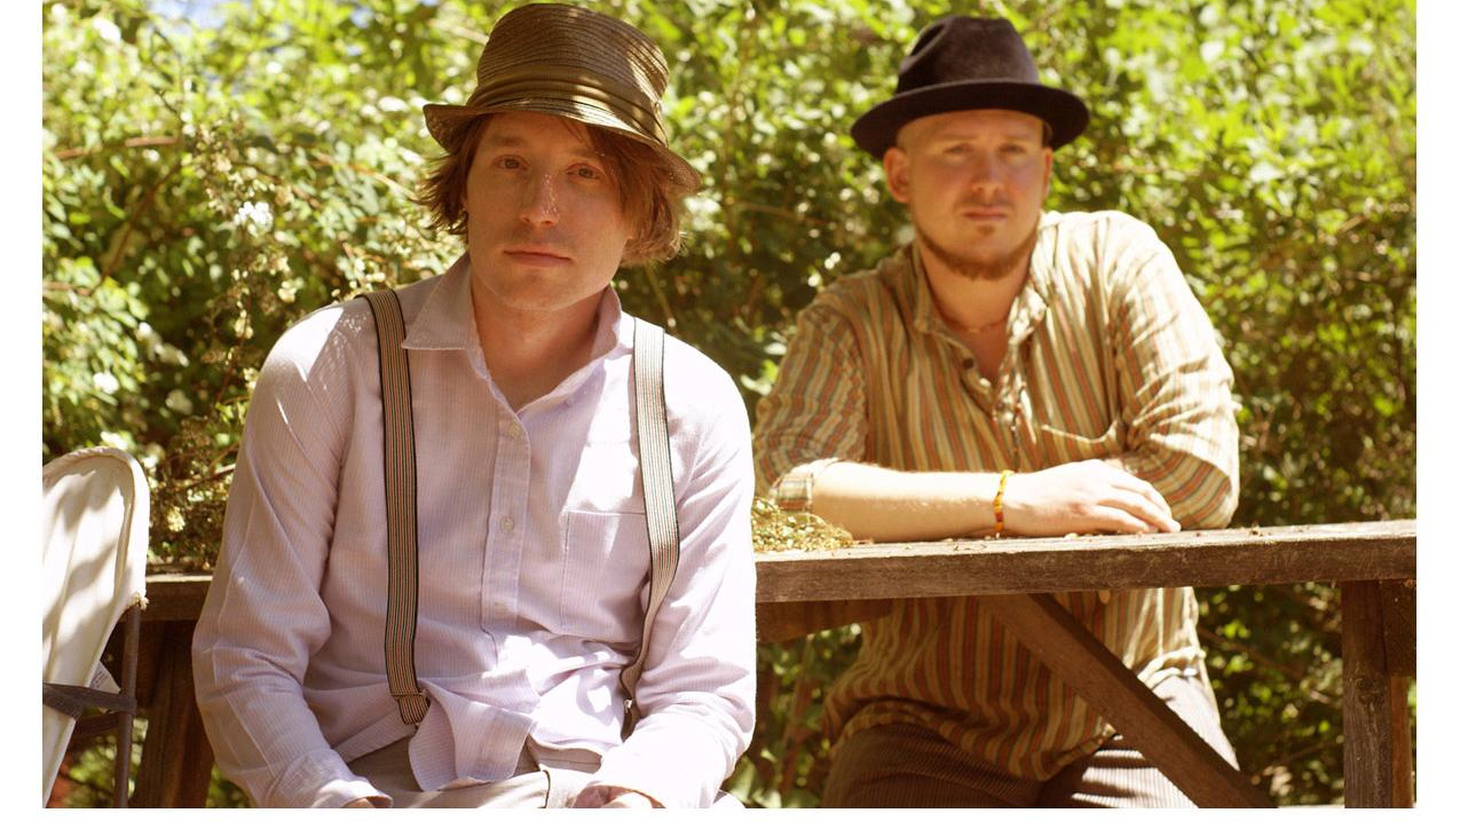 Minneapolis-based duo The Pines are steeped in the sound of Americana, as evidenced in their CD, Tremolo.